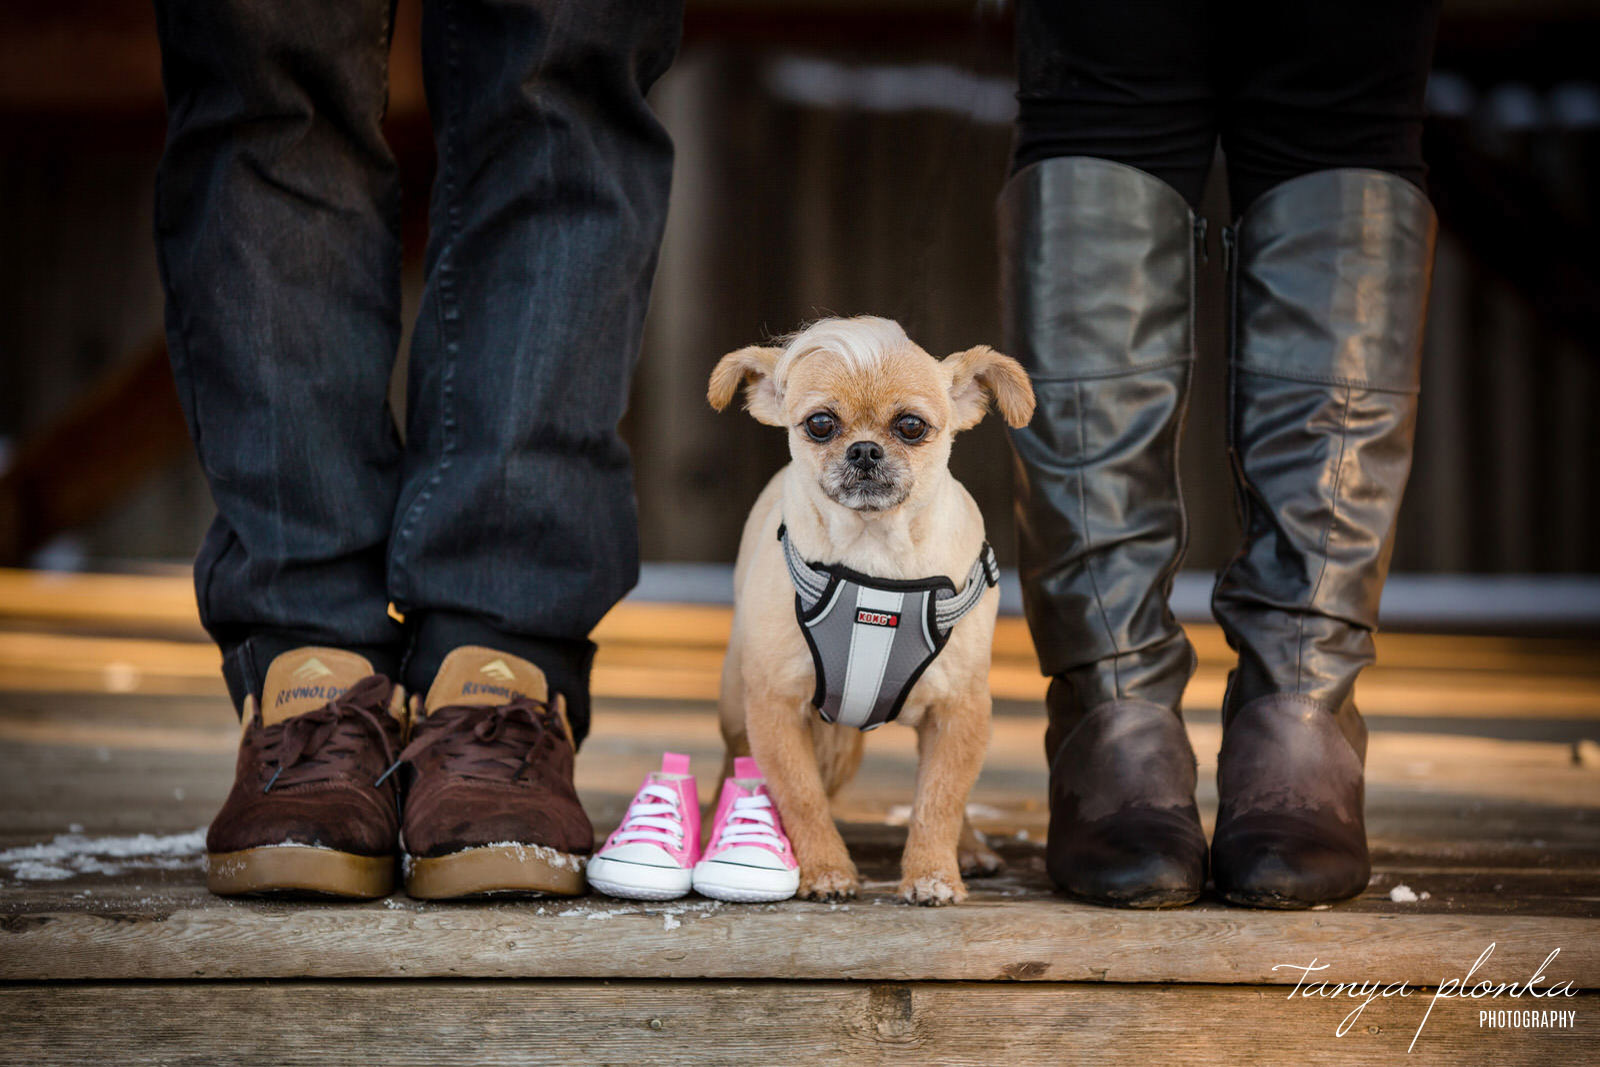 closeup of people's feet in shoes with small dog in middle and pink baby shoes